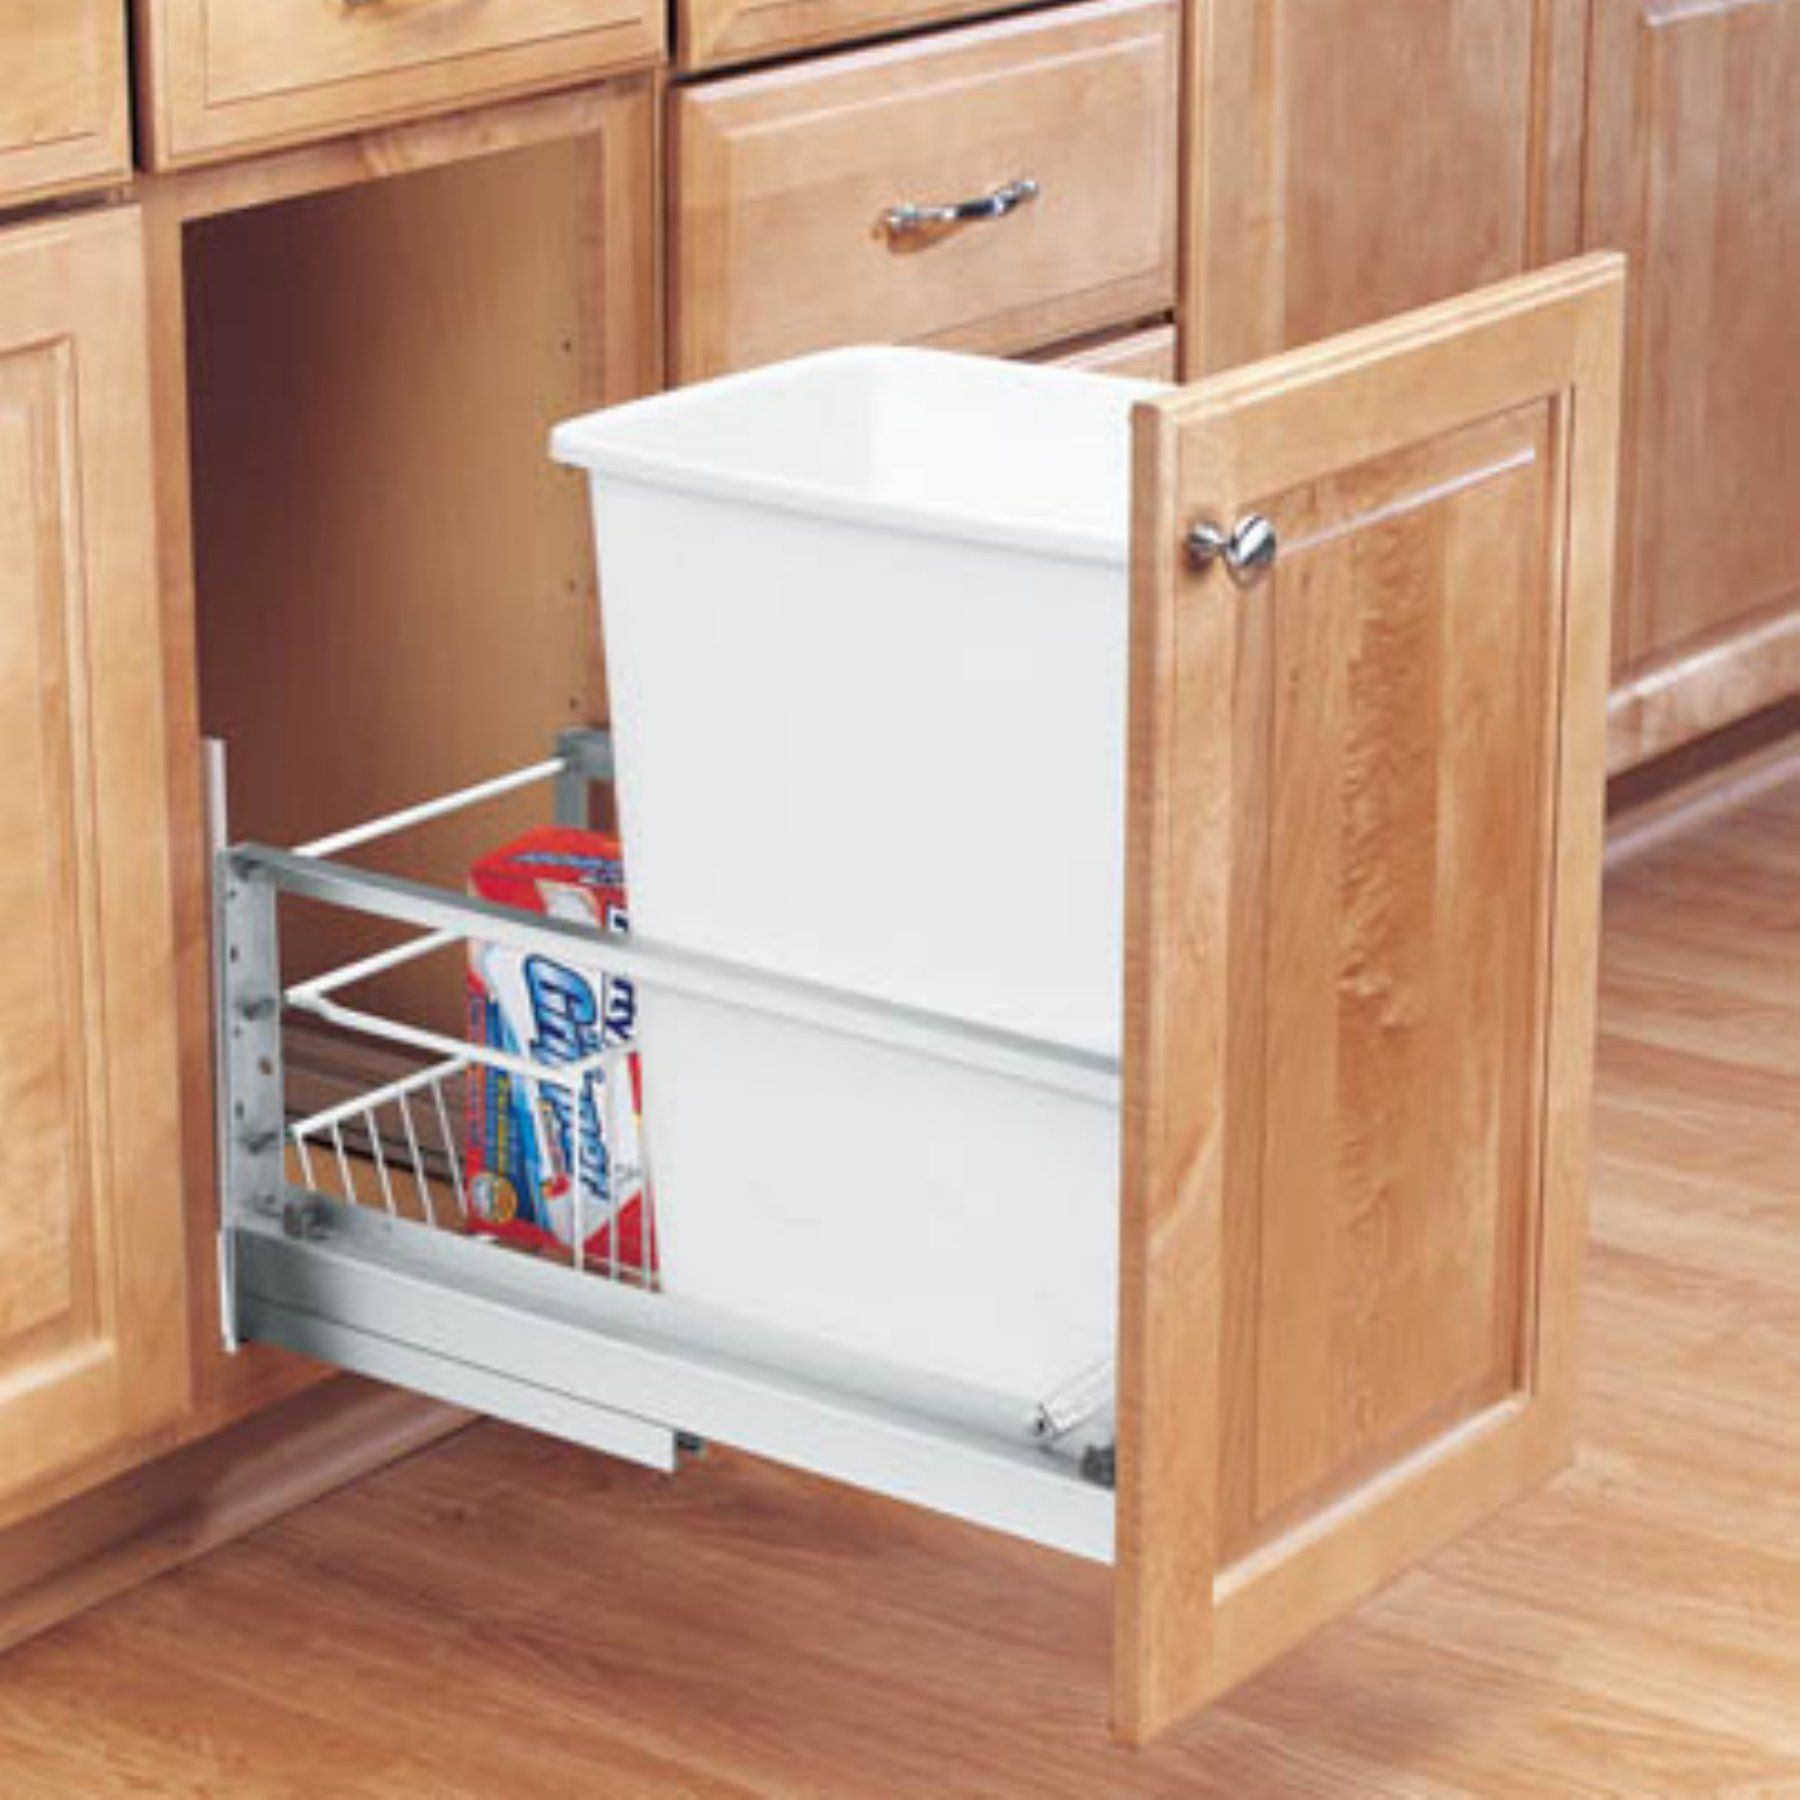 cabinet of slides kitchen shelves hacker small trash work lotus hackers pull uk size drawer cabinets does pantry cost bench pub much drawers units organizer full table how ikea can brilliant out